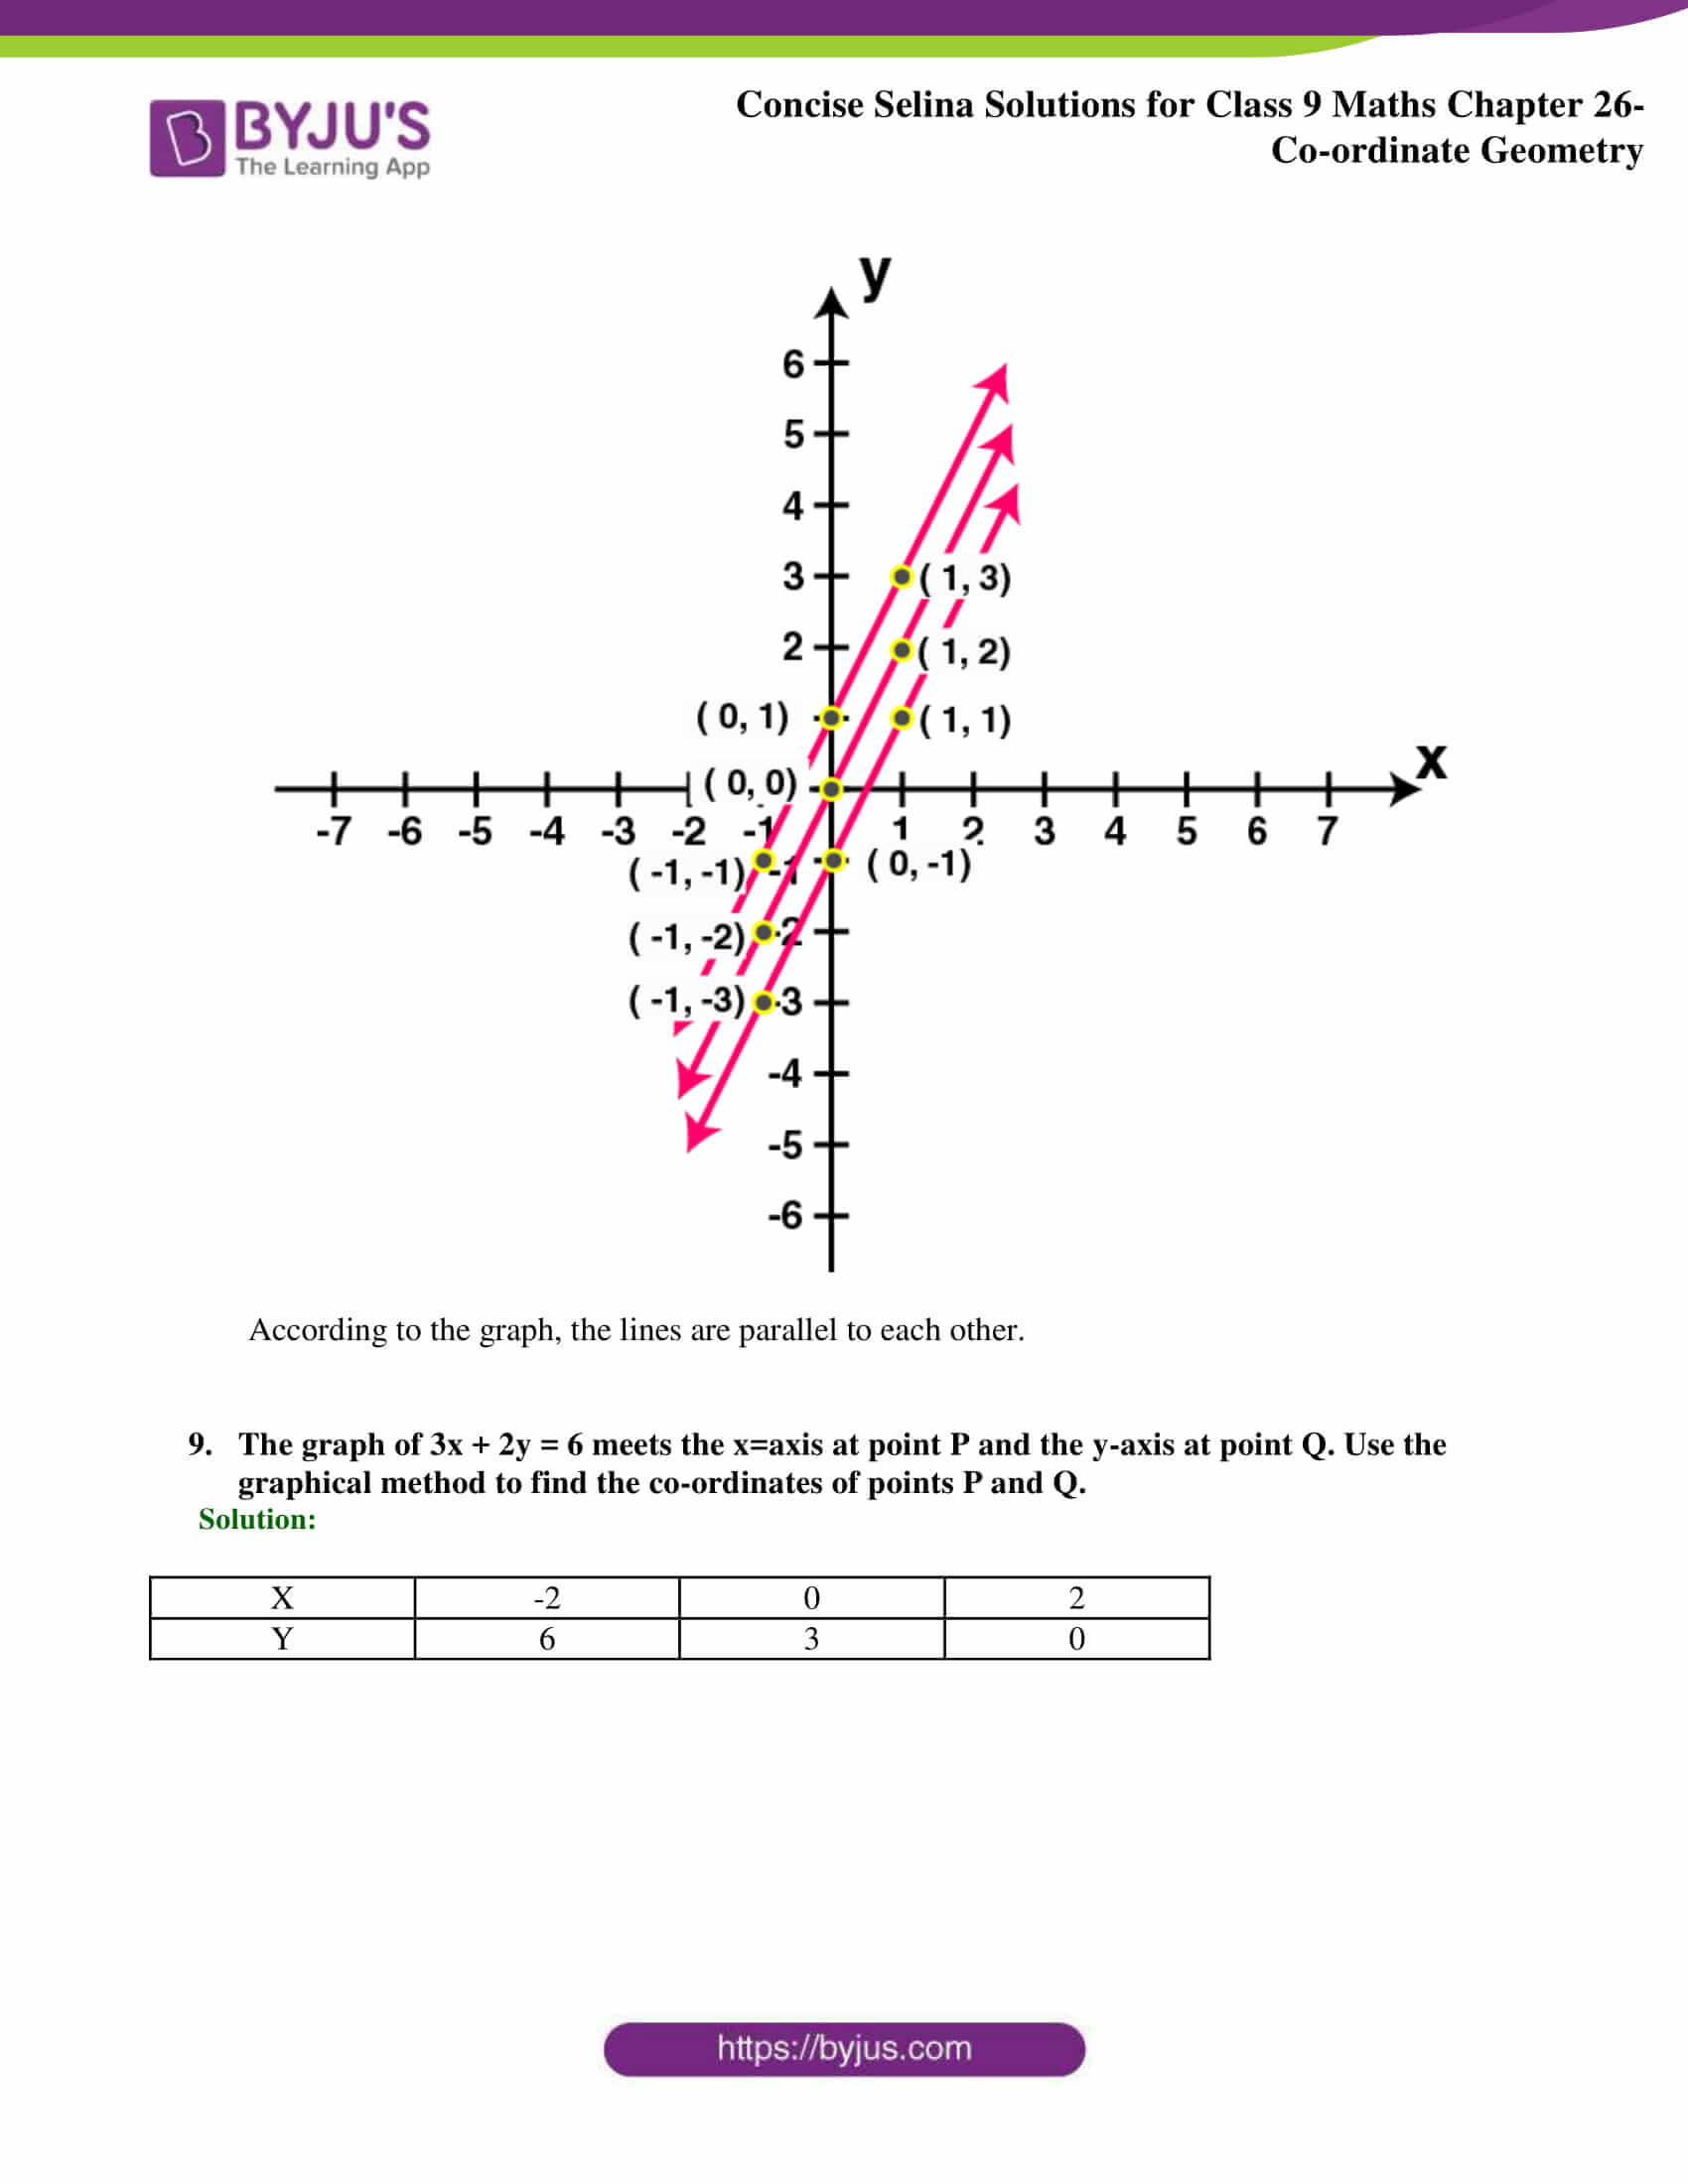 Selina Solutions for Class 9 Maths Chapter 26 part 40